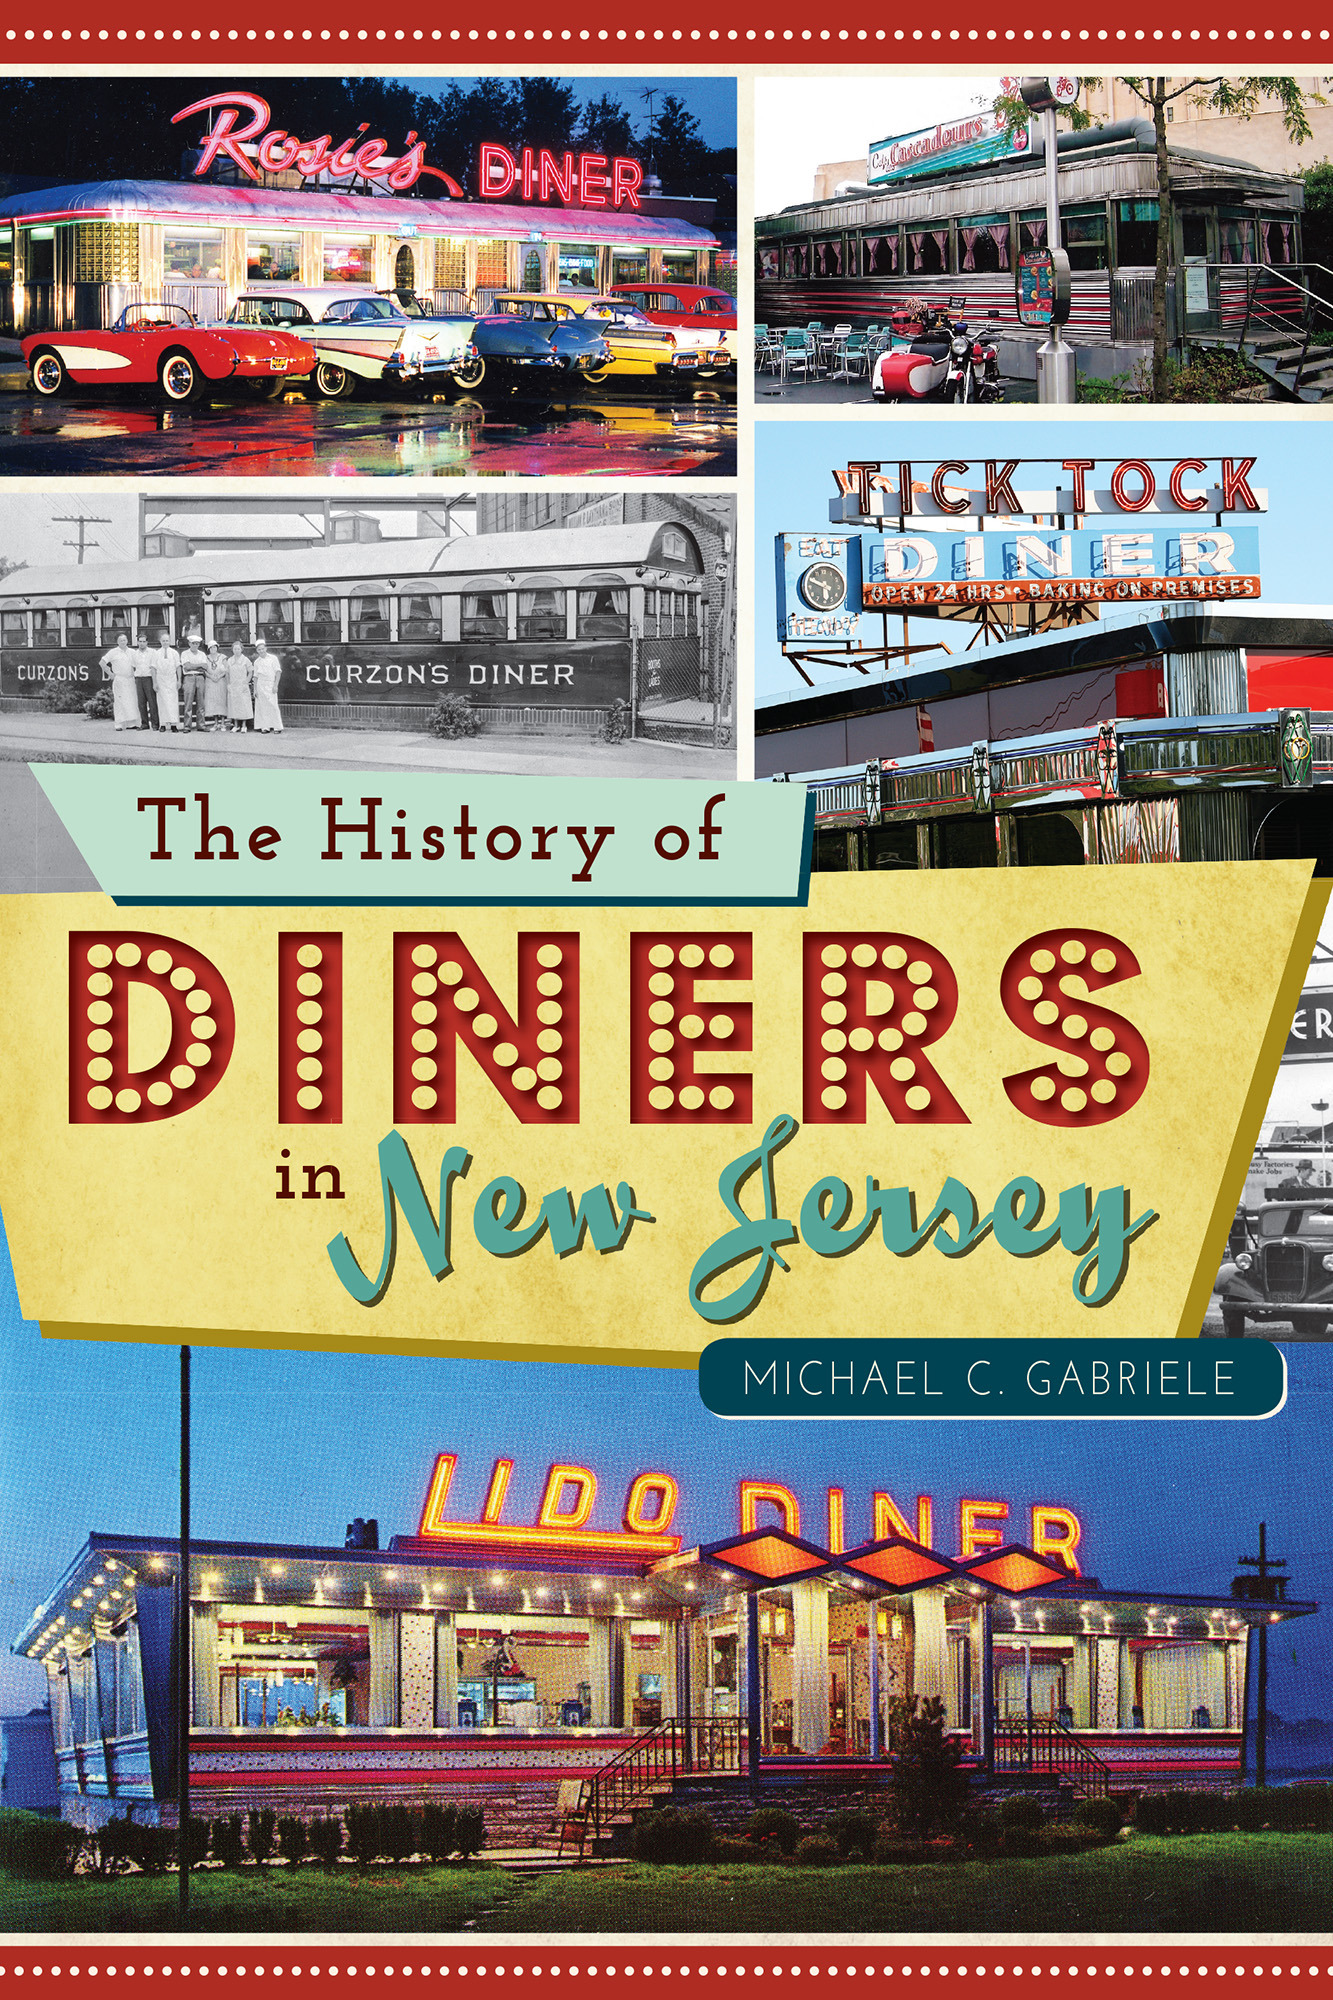 69dc8fbfff3b8d139ed9_Front_Cover_Diner_Book_High_Rez.jpg